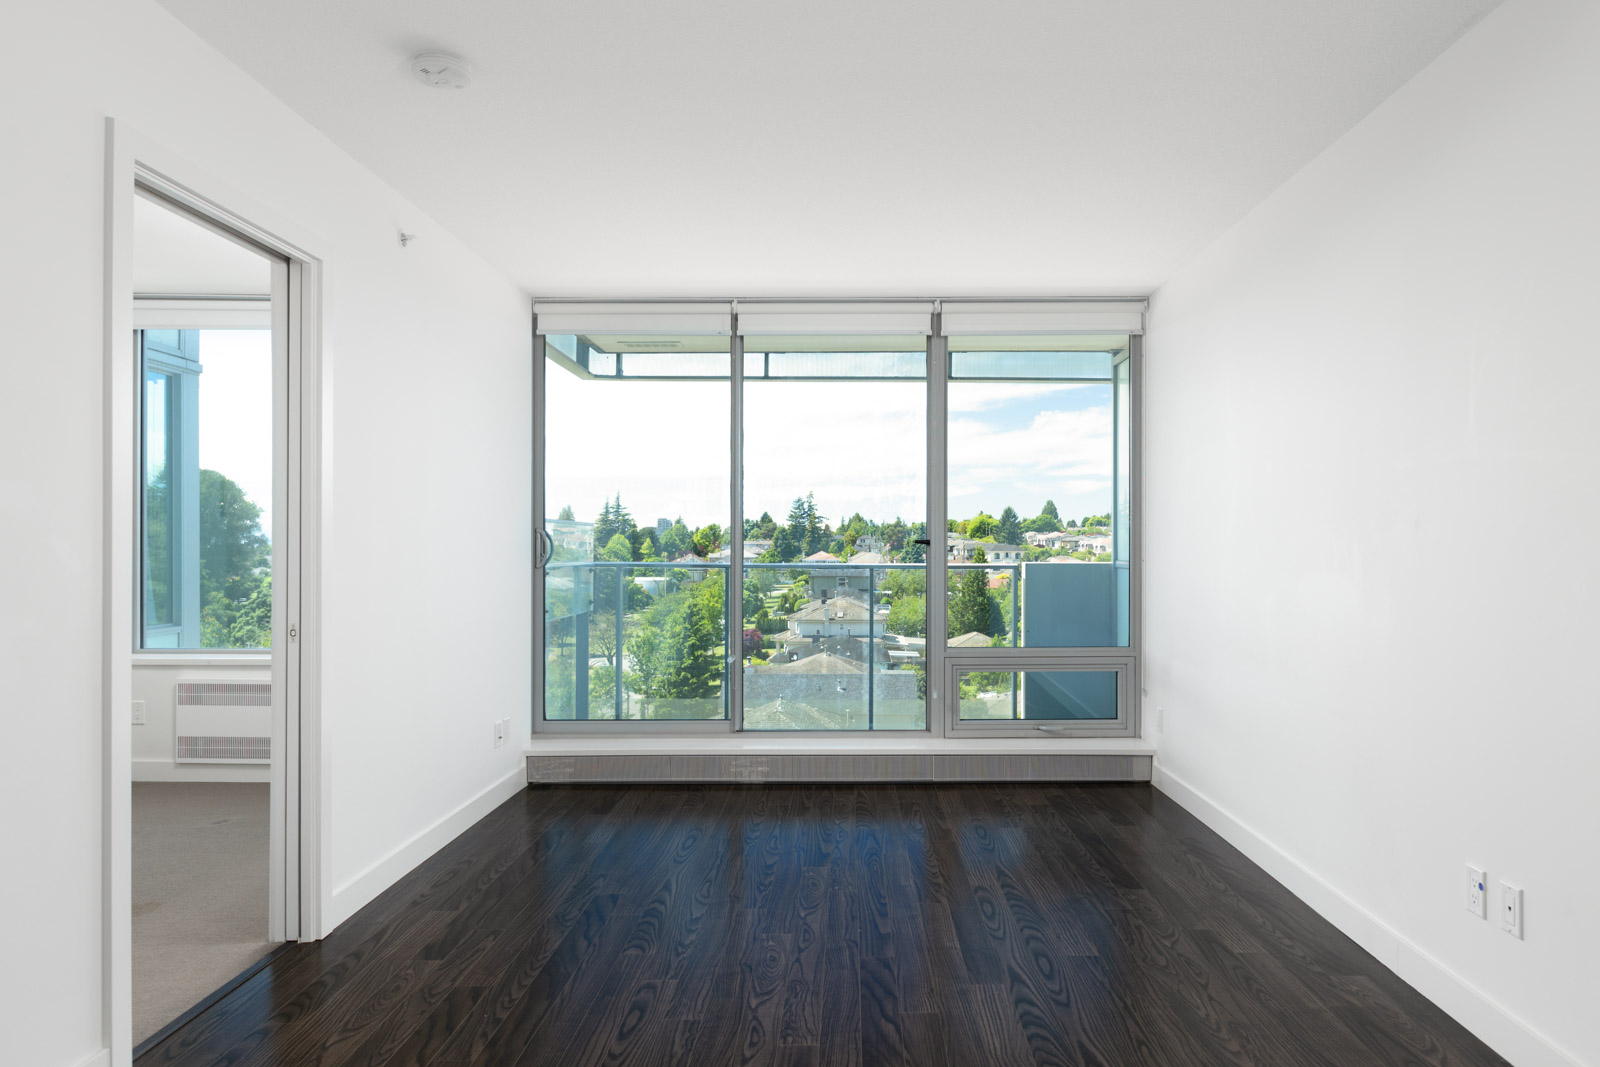 Spacious living area with natural lighting offered by close access to the balcony with laminate hardwood flooring in a rental condo in Vancouver offered by Birds Nest Properties.